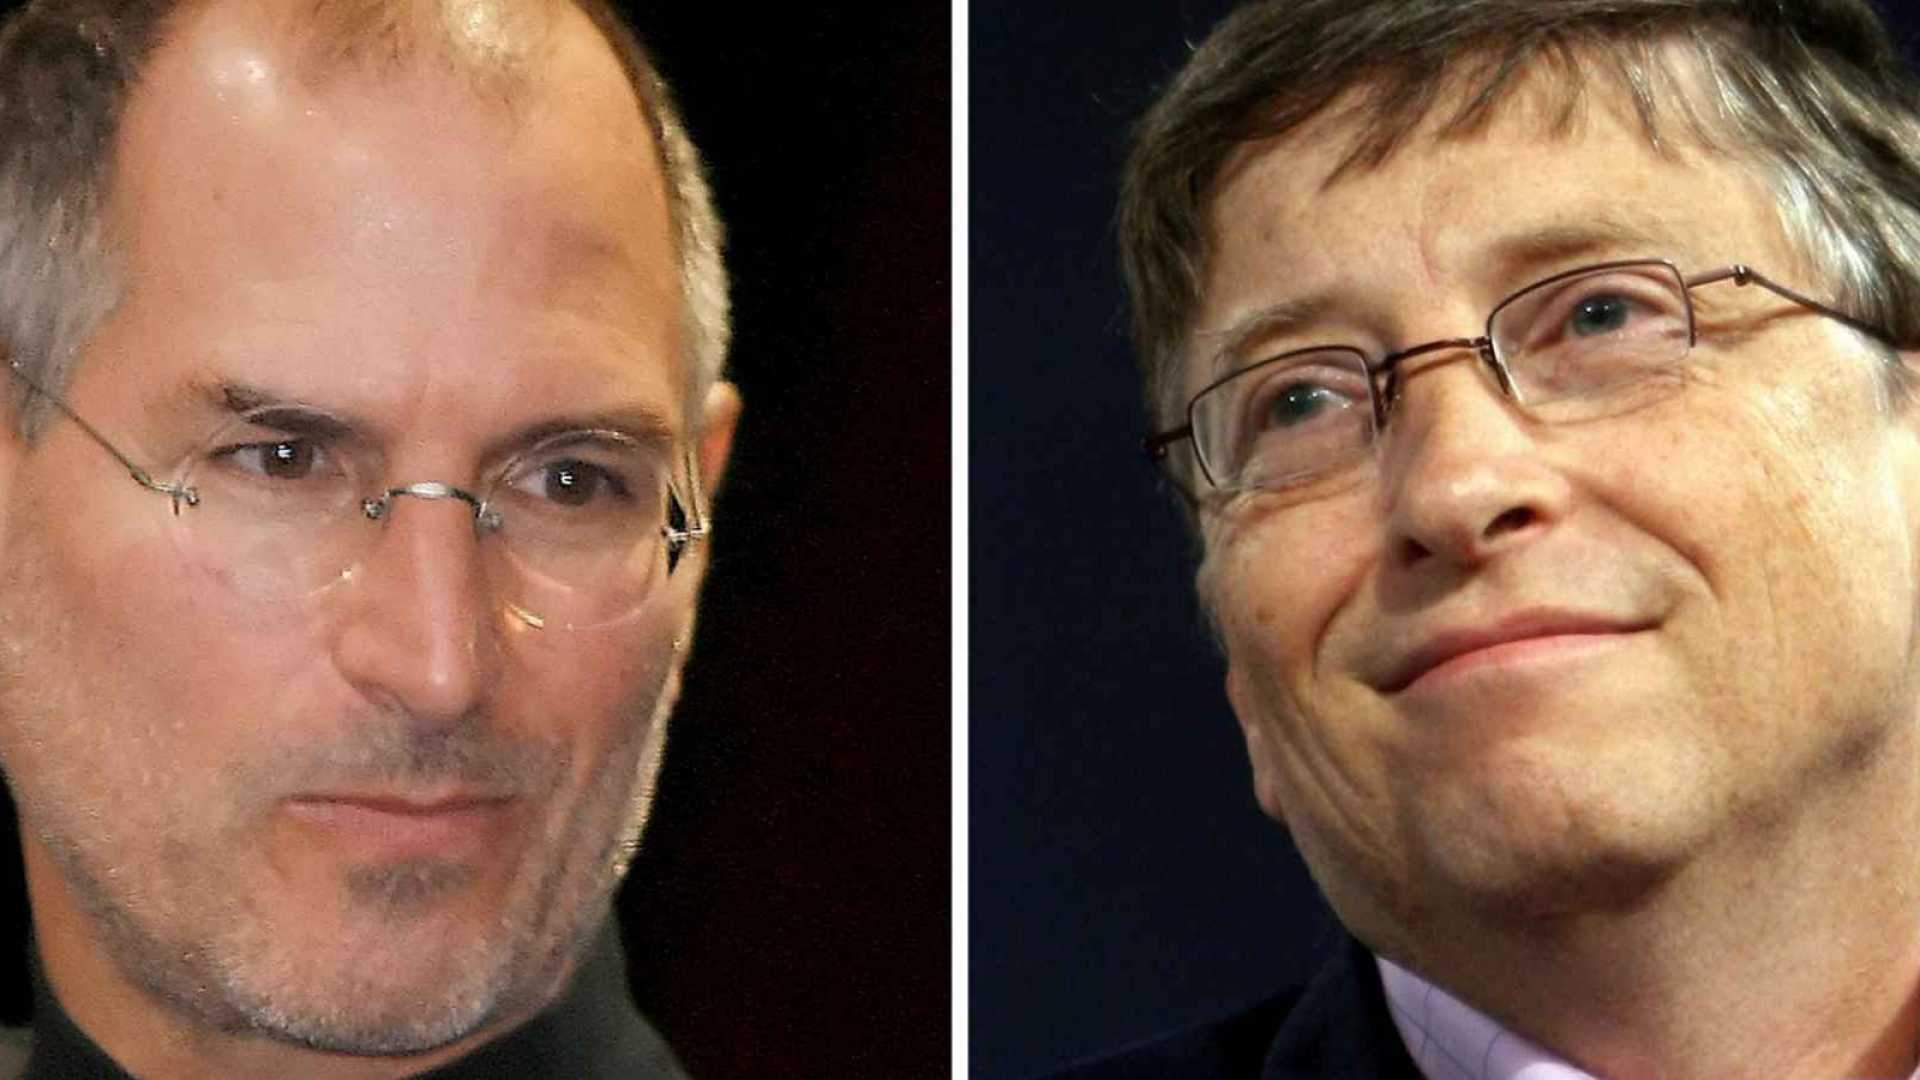 Steve Jobs Was From California. Bill Gates Is From Washington. Here's How You Can Tell